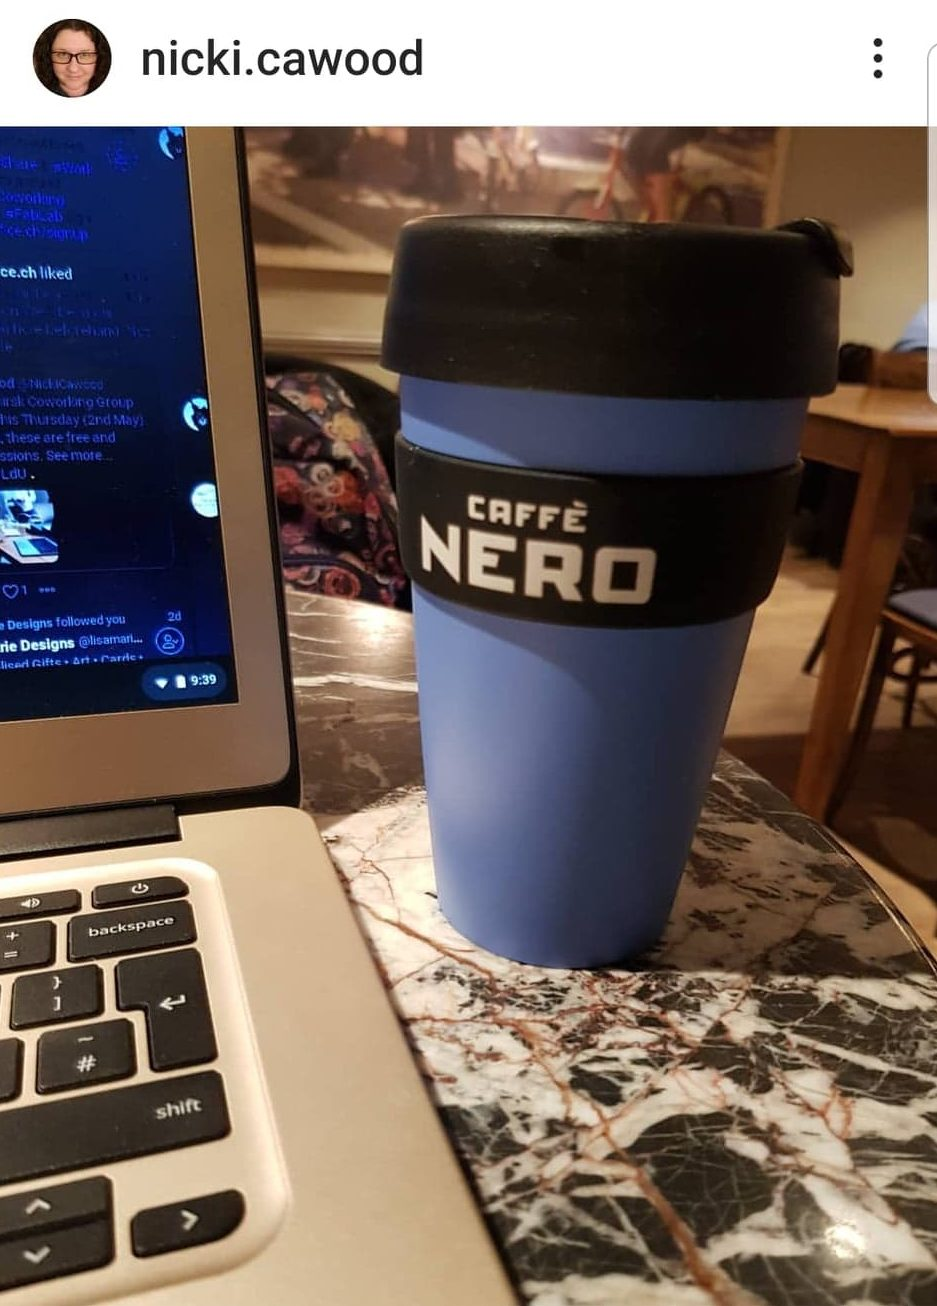 Freelance copywriter, coffee, caffe nero, Thirsk